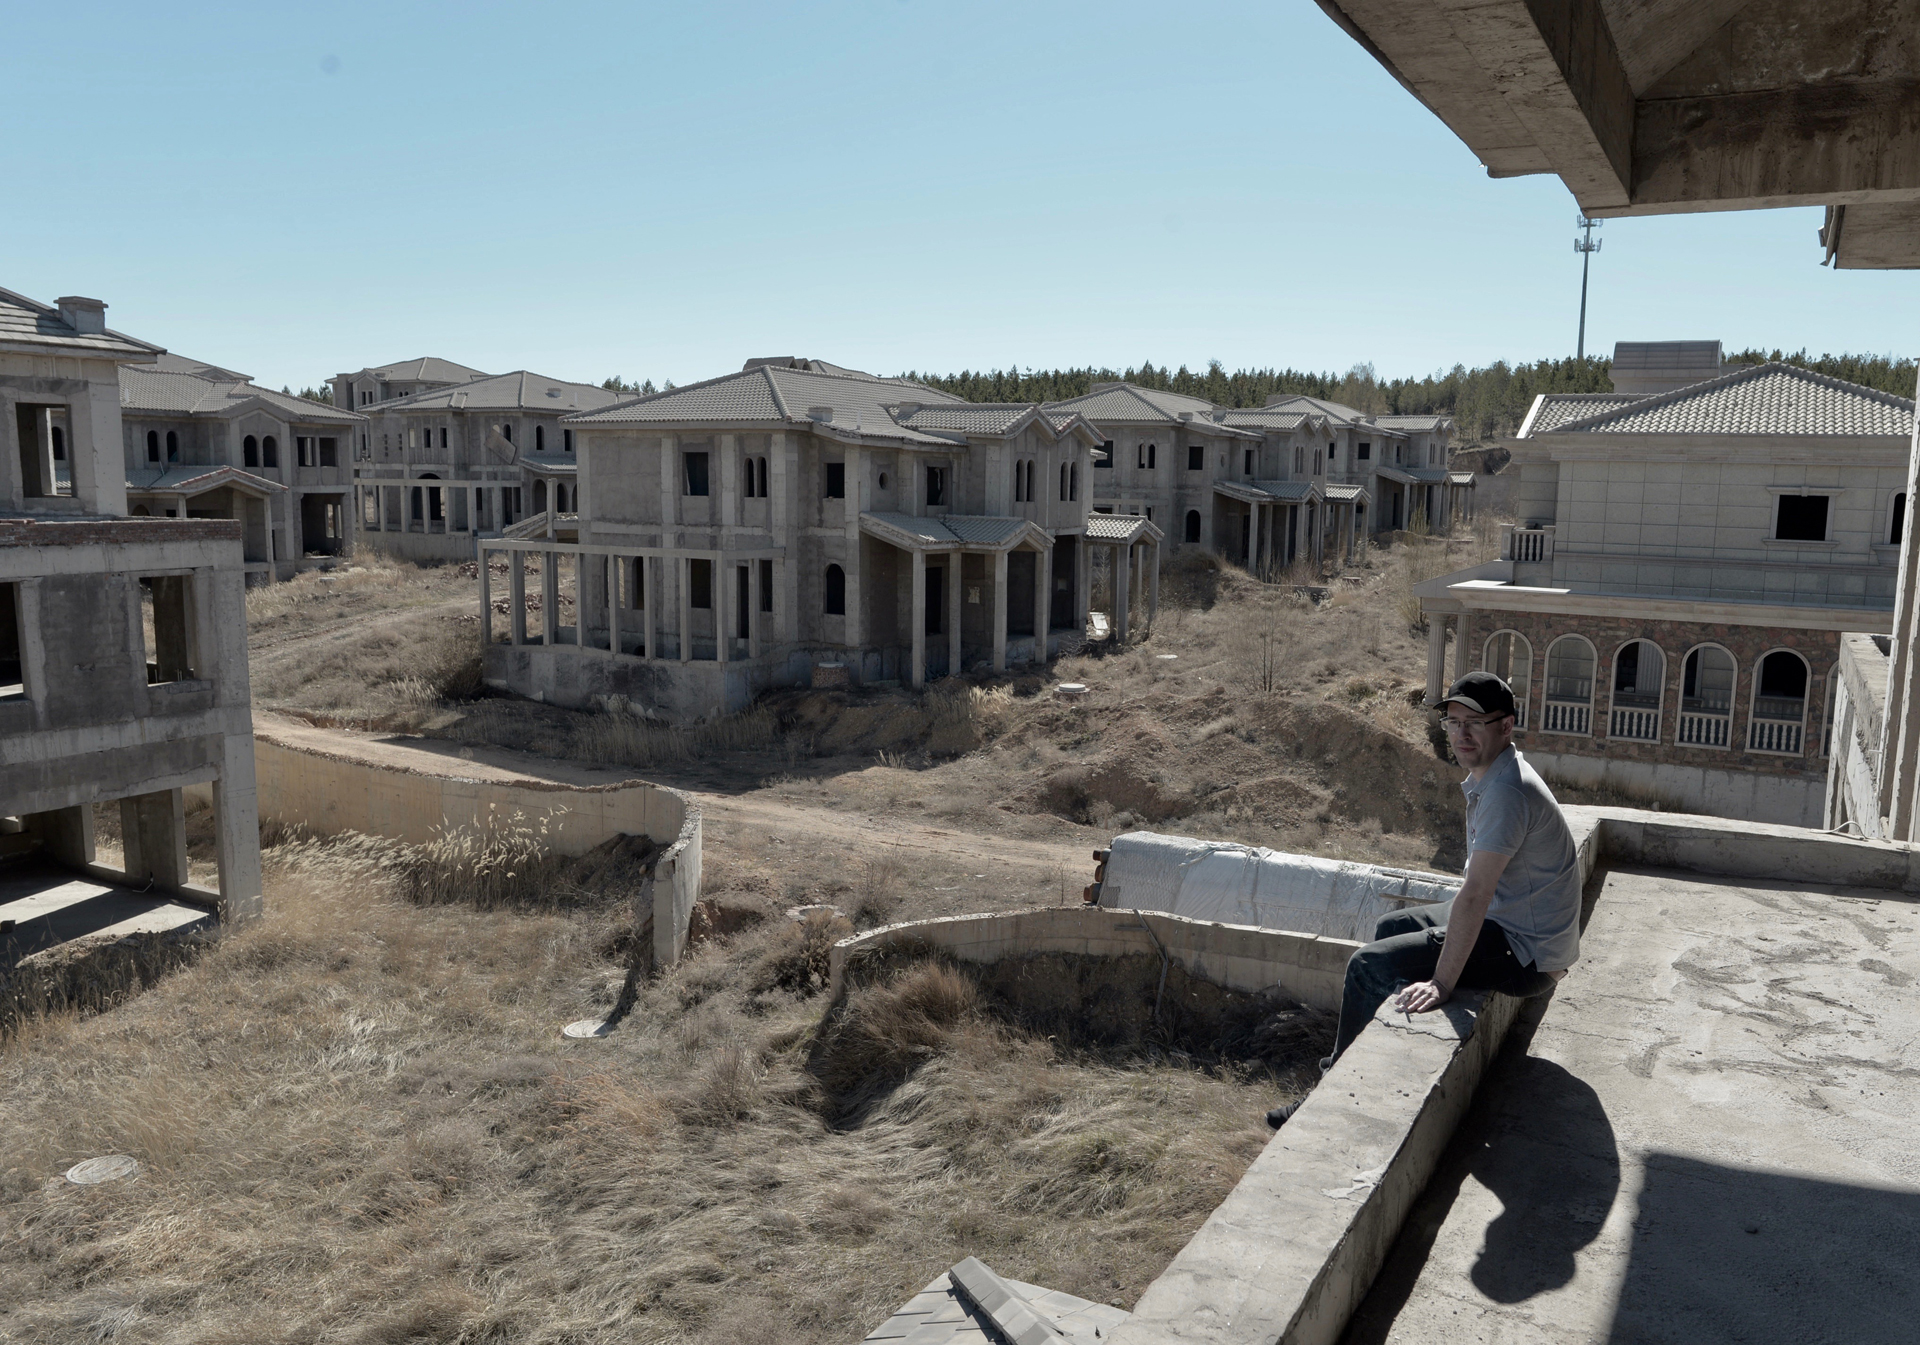 A man looks out over the empty buildings of Ordos Kangbashi.